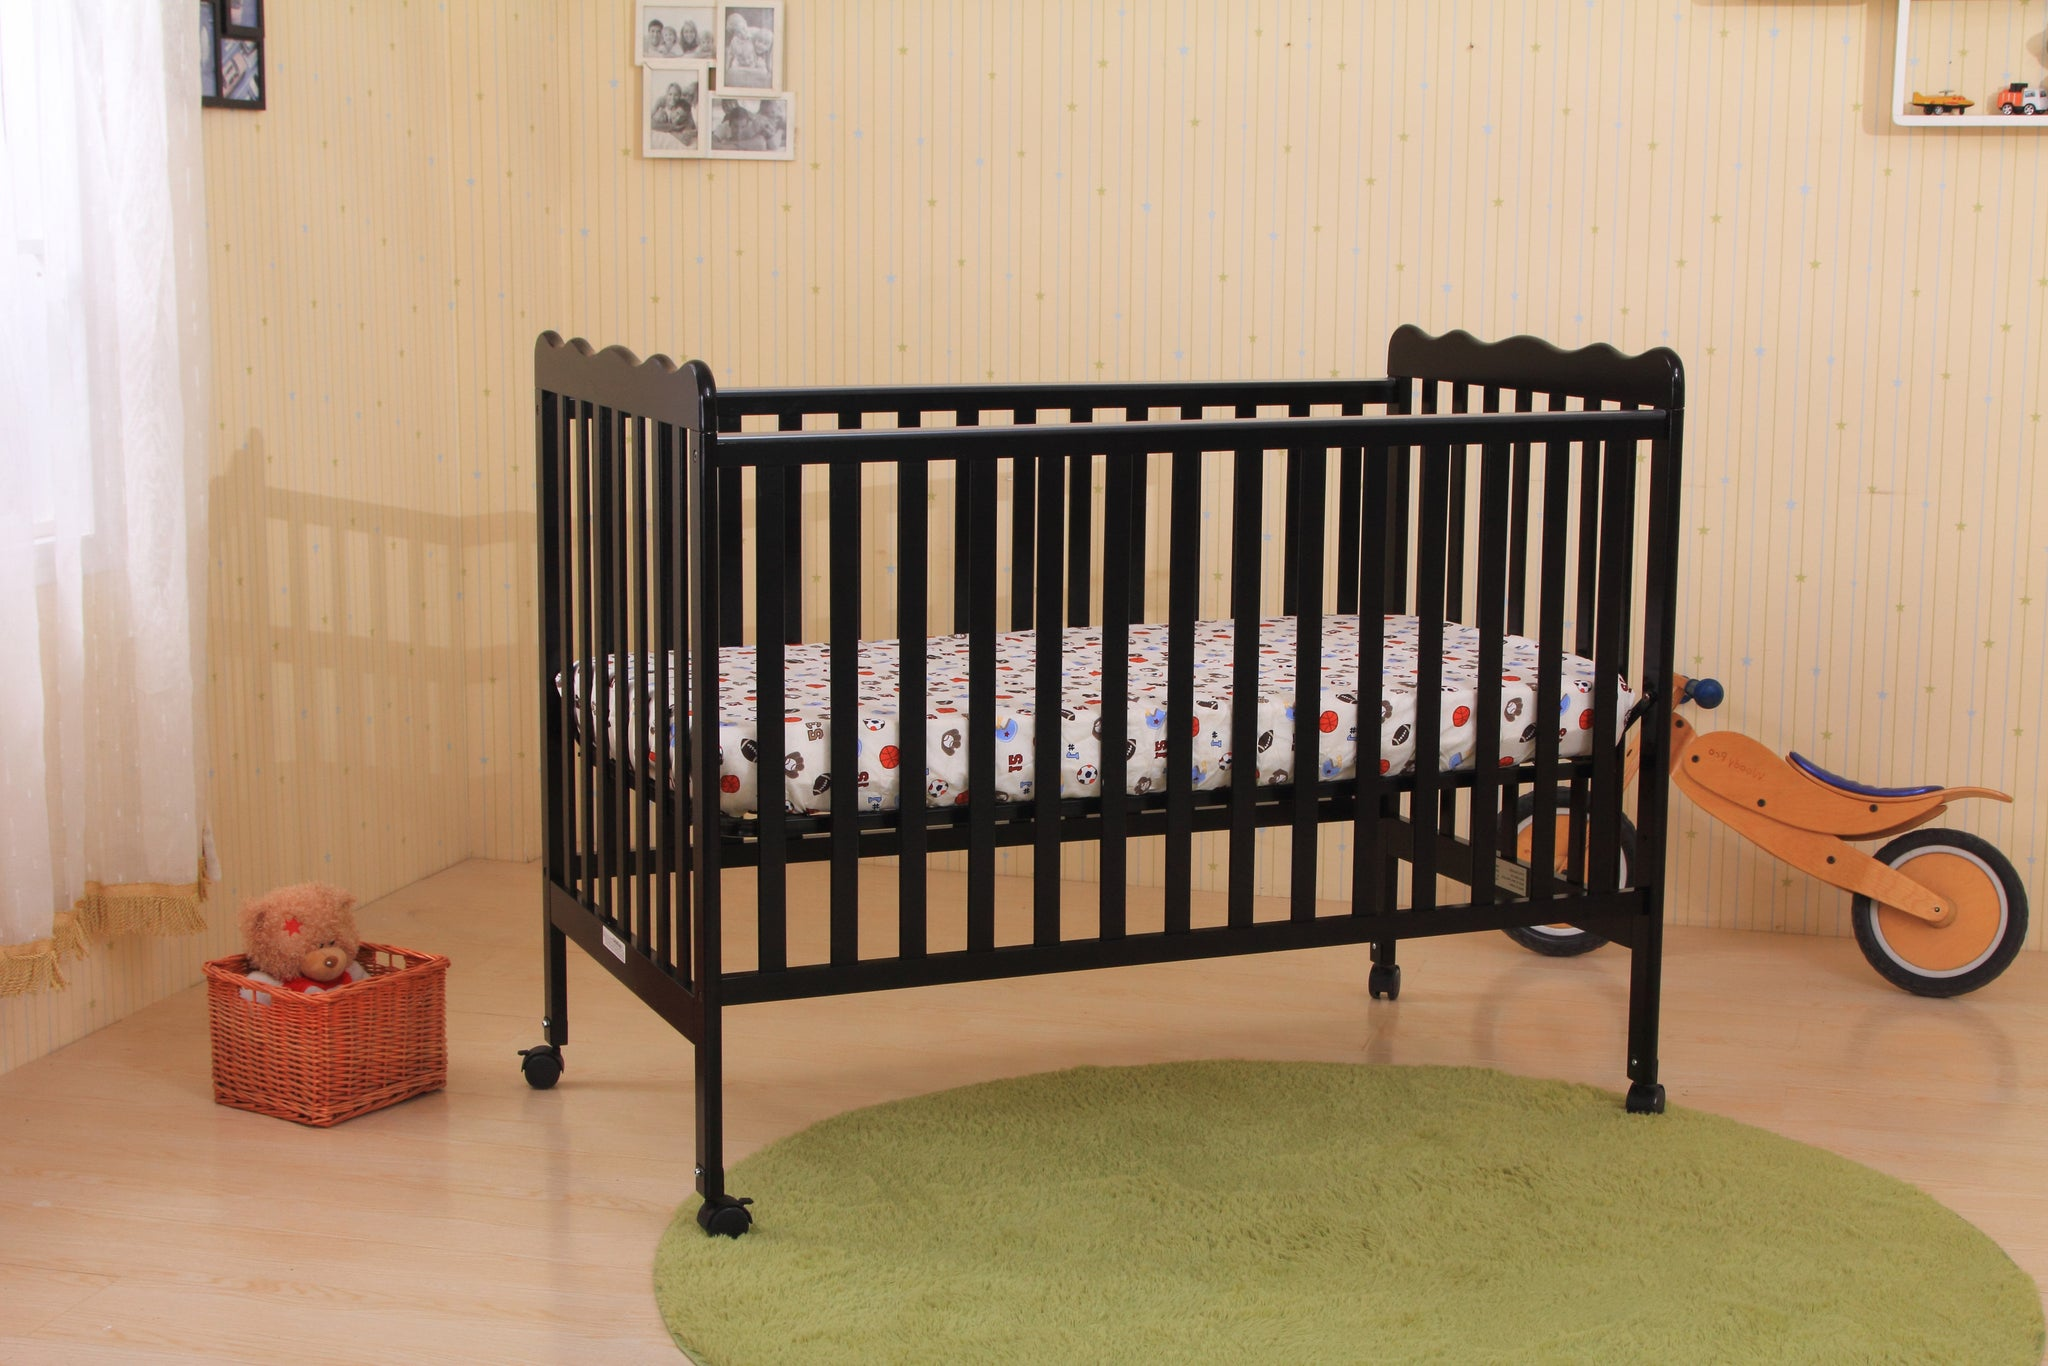 carousel designs large crib baby bedding solid black collection